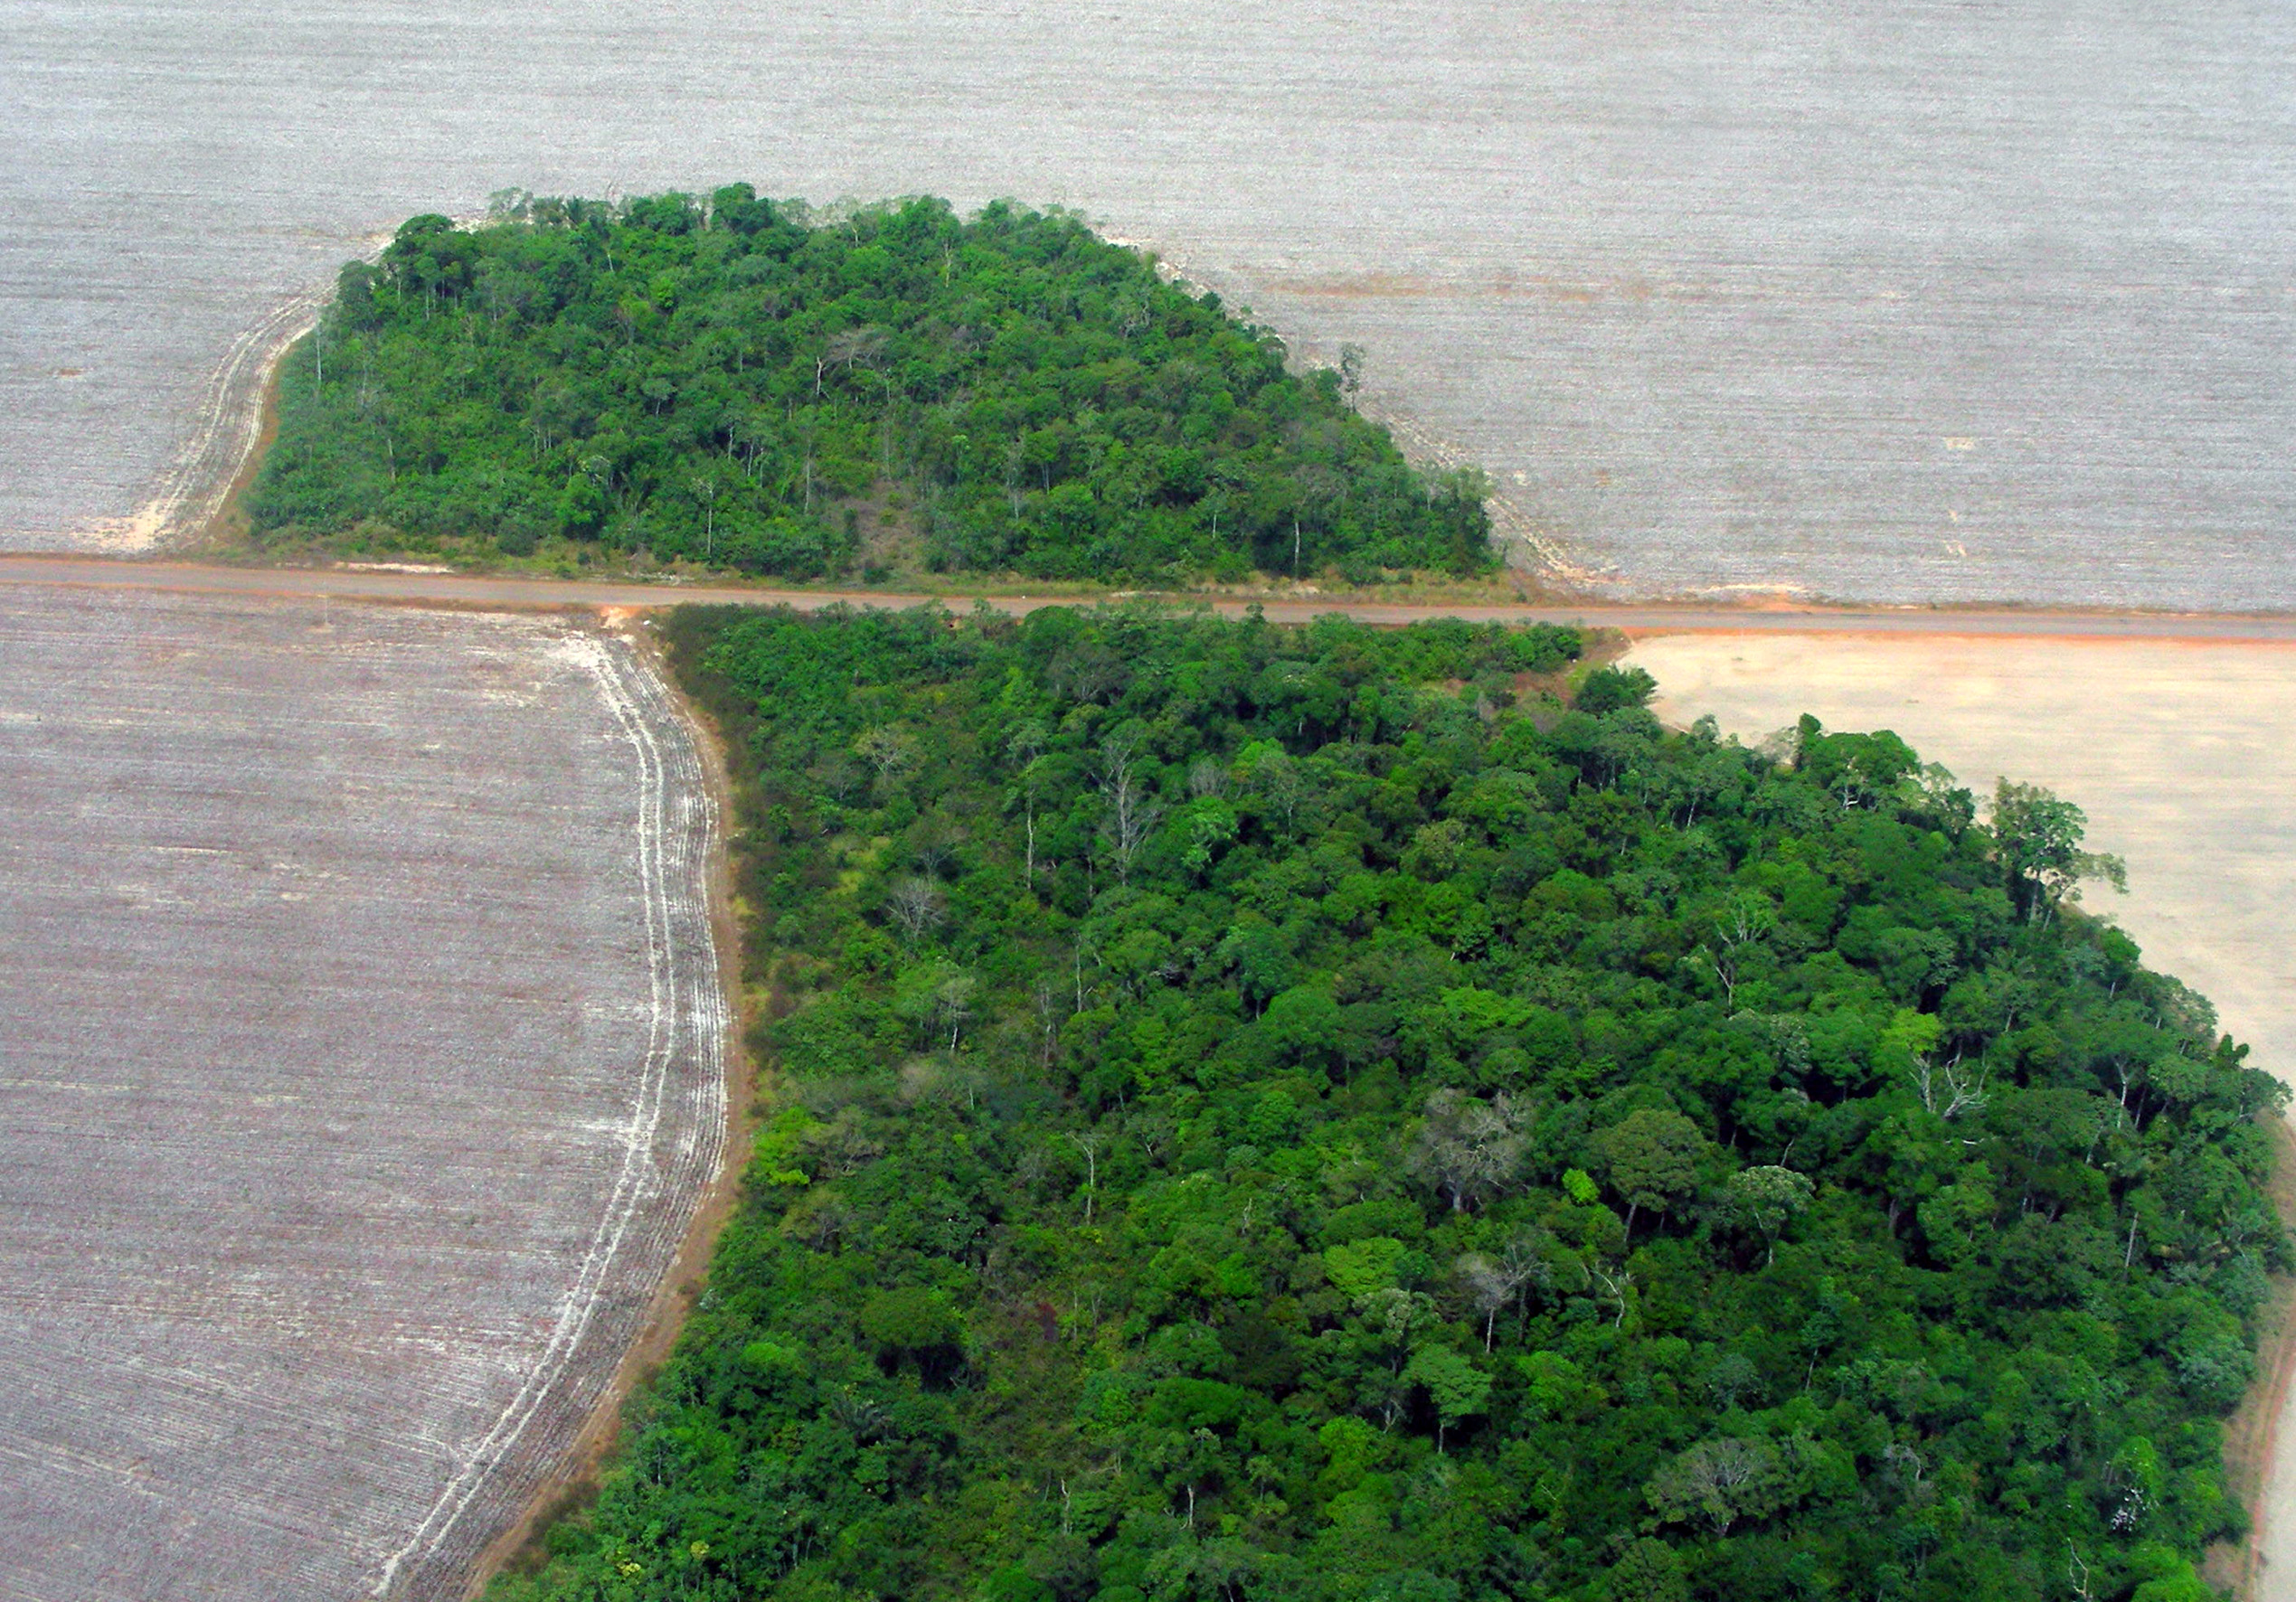 deforestation in brazil Deforestation in brazilian amazonia destroys environmental services that are important for the whole world, and especially for brazil itself these services include maintaining biodiversity.